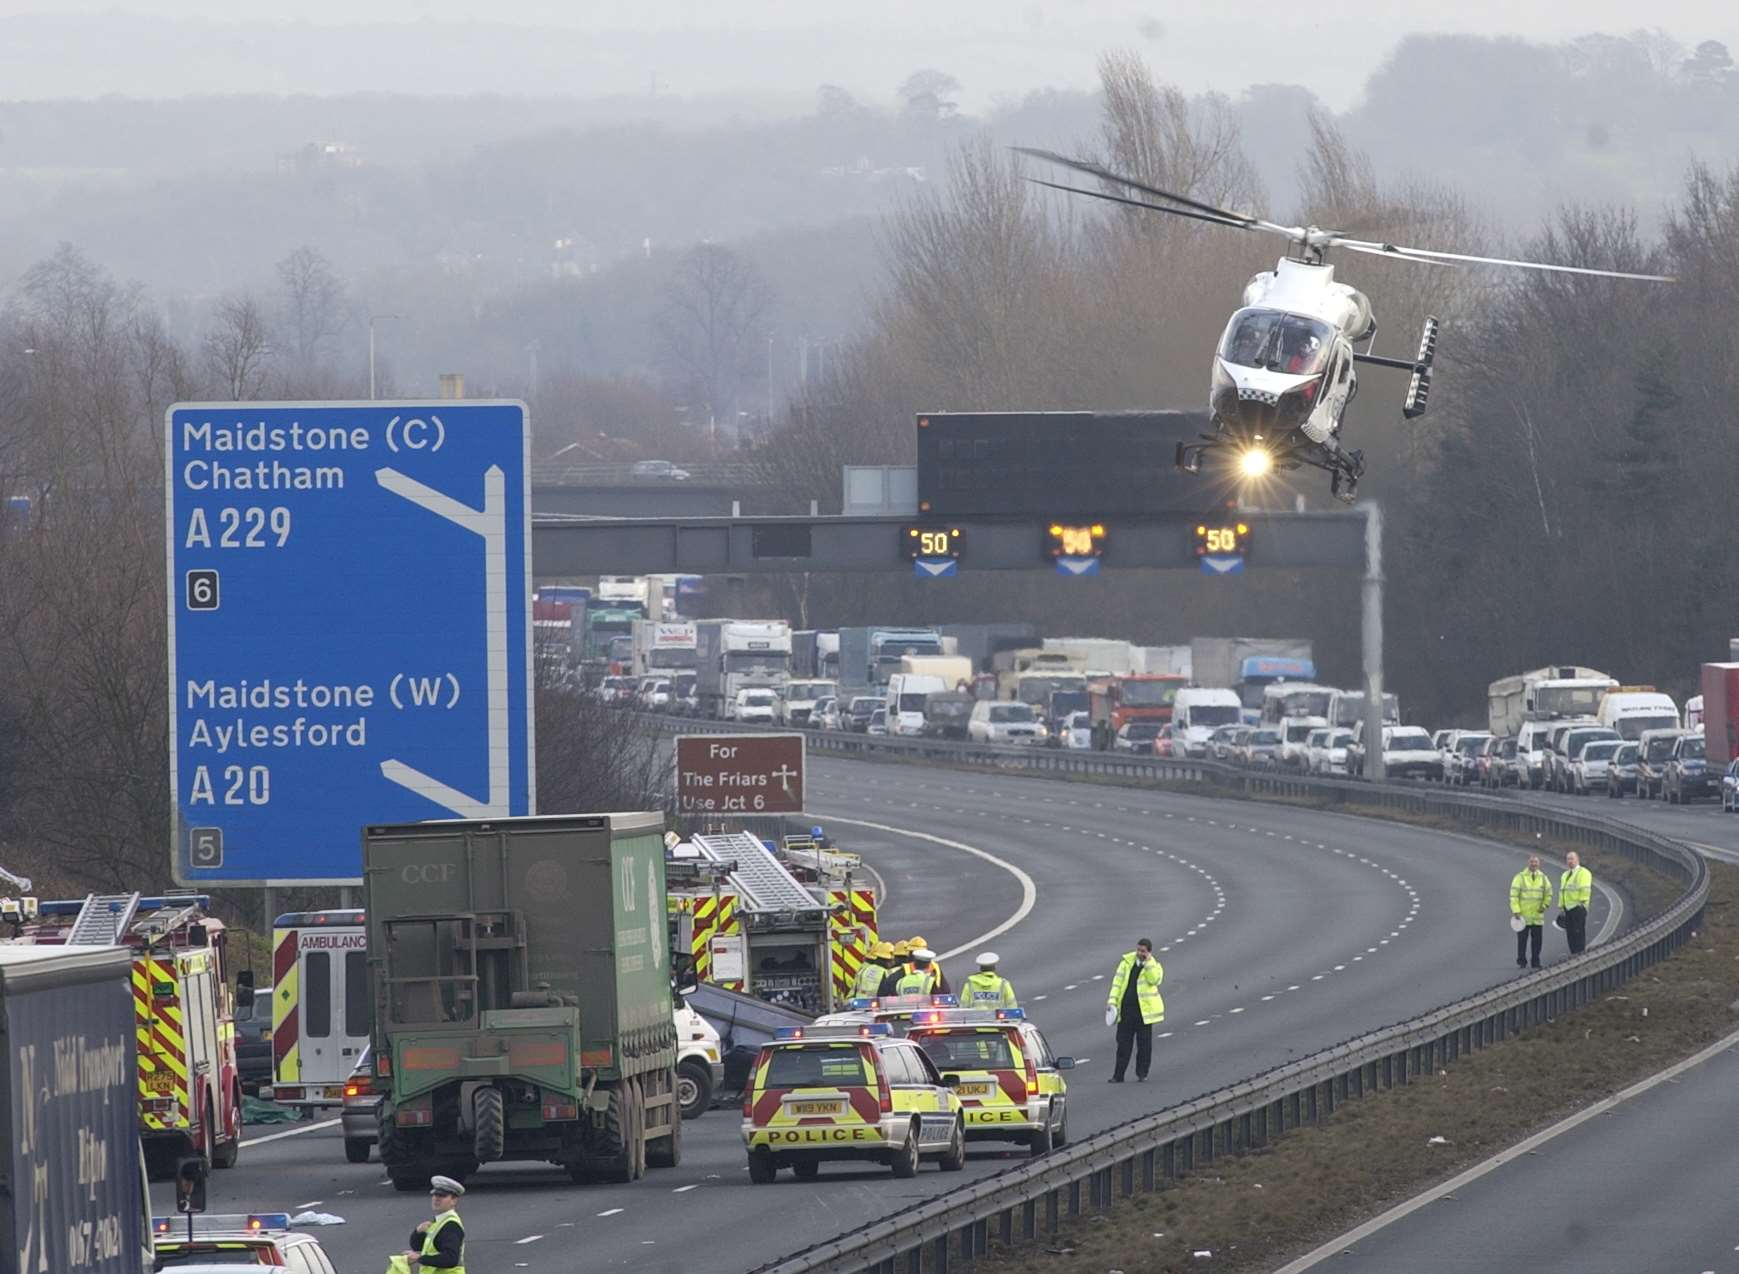 The air ambulance in action on the M20. Library image.